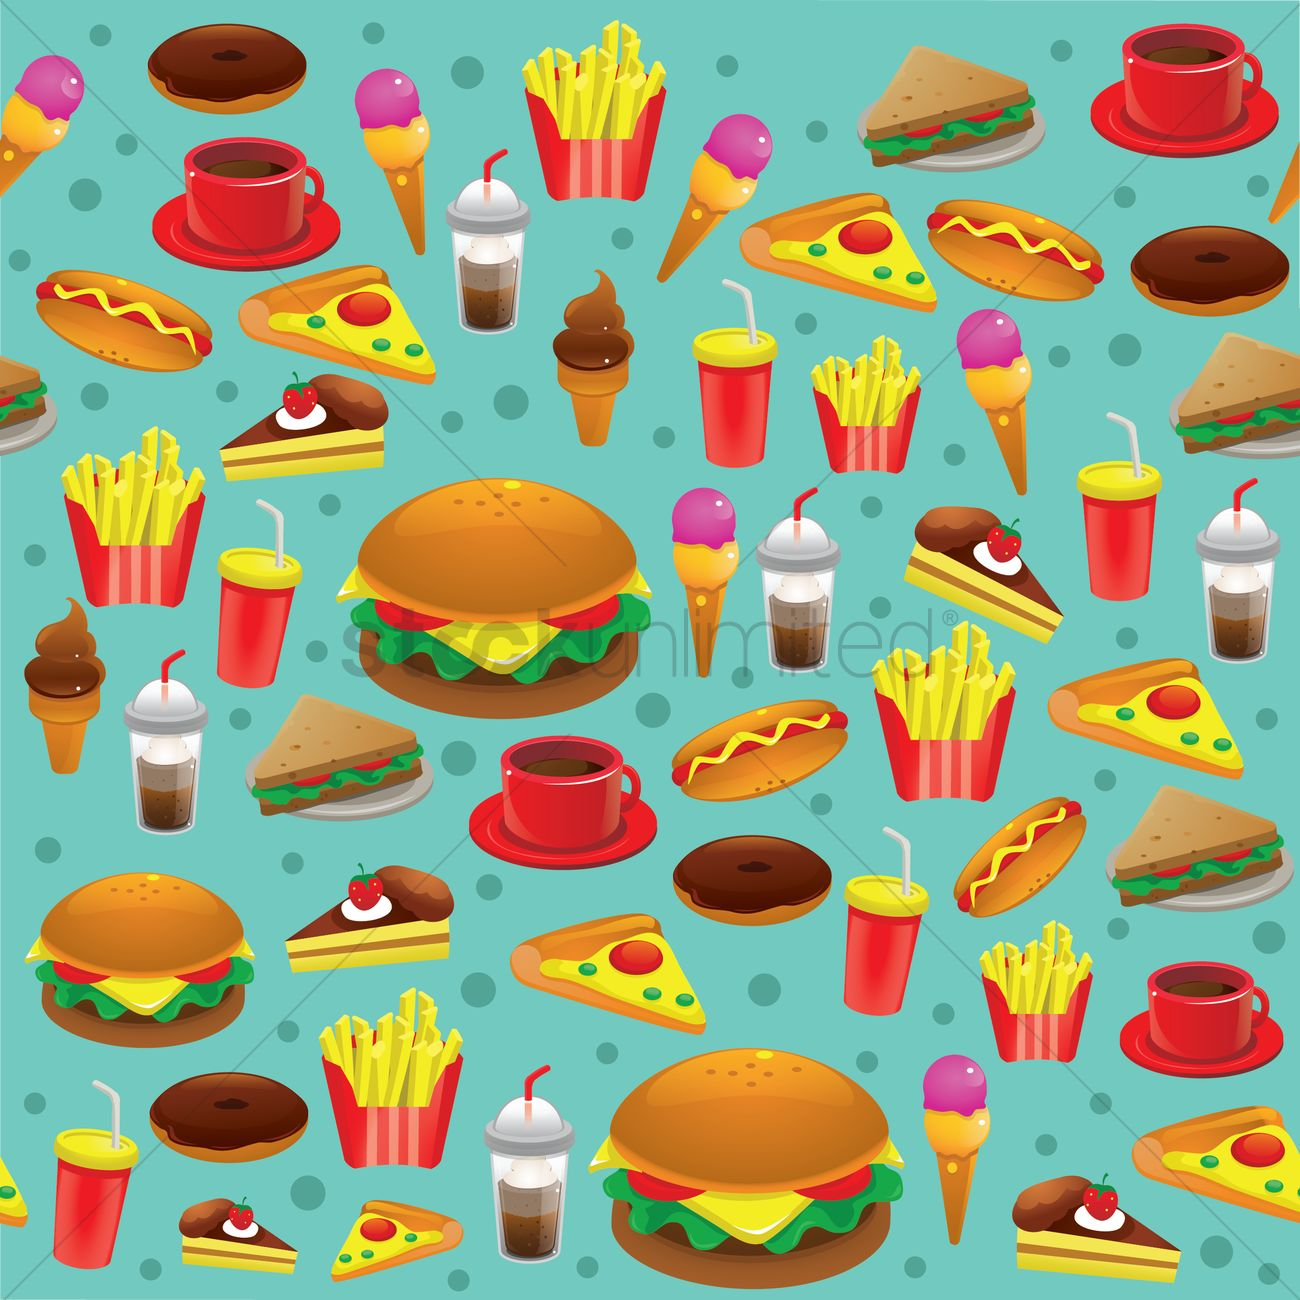 Food Background Vector Image - 1305818